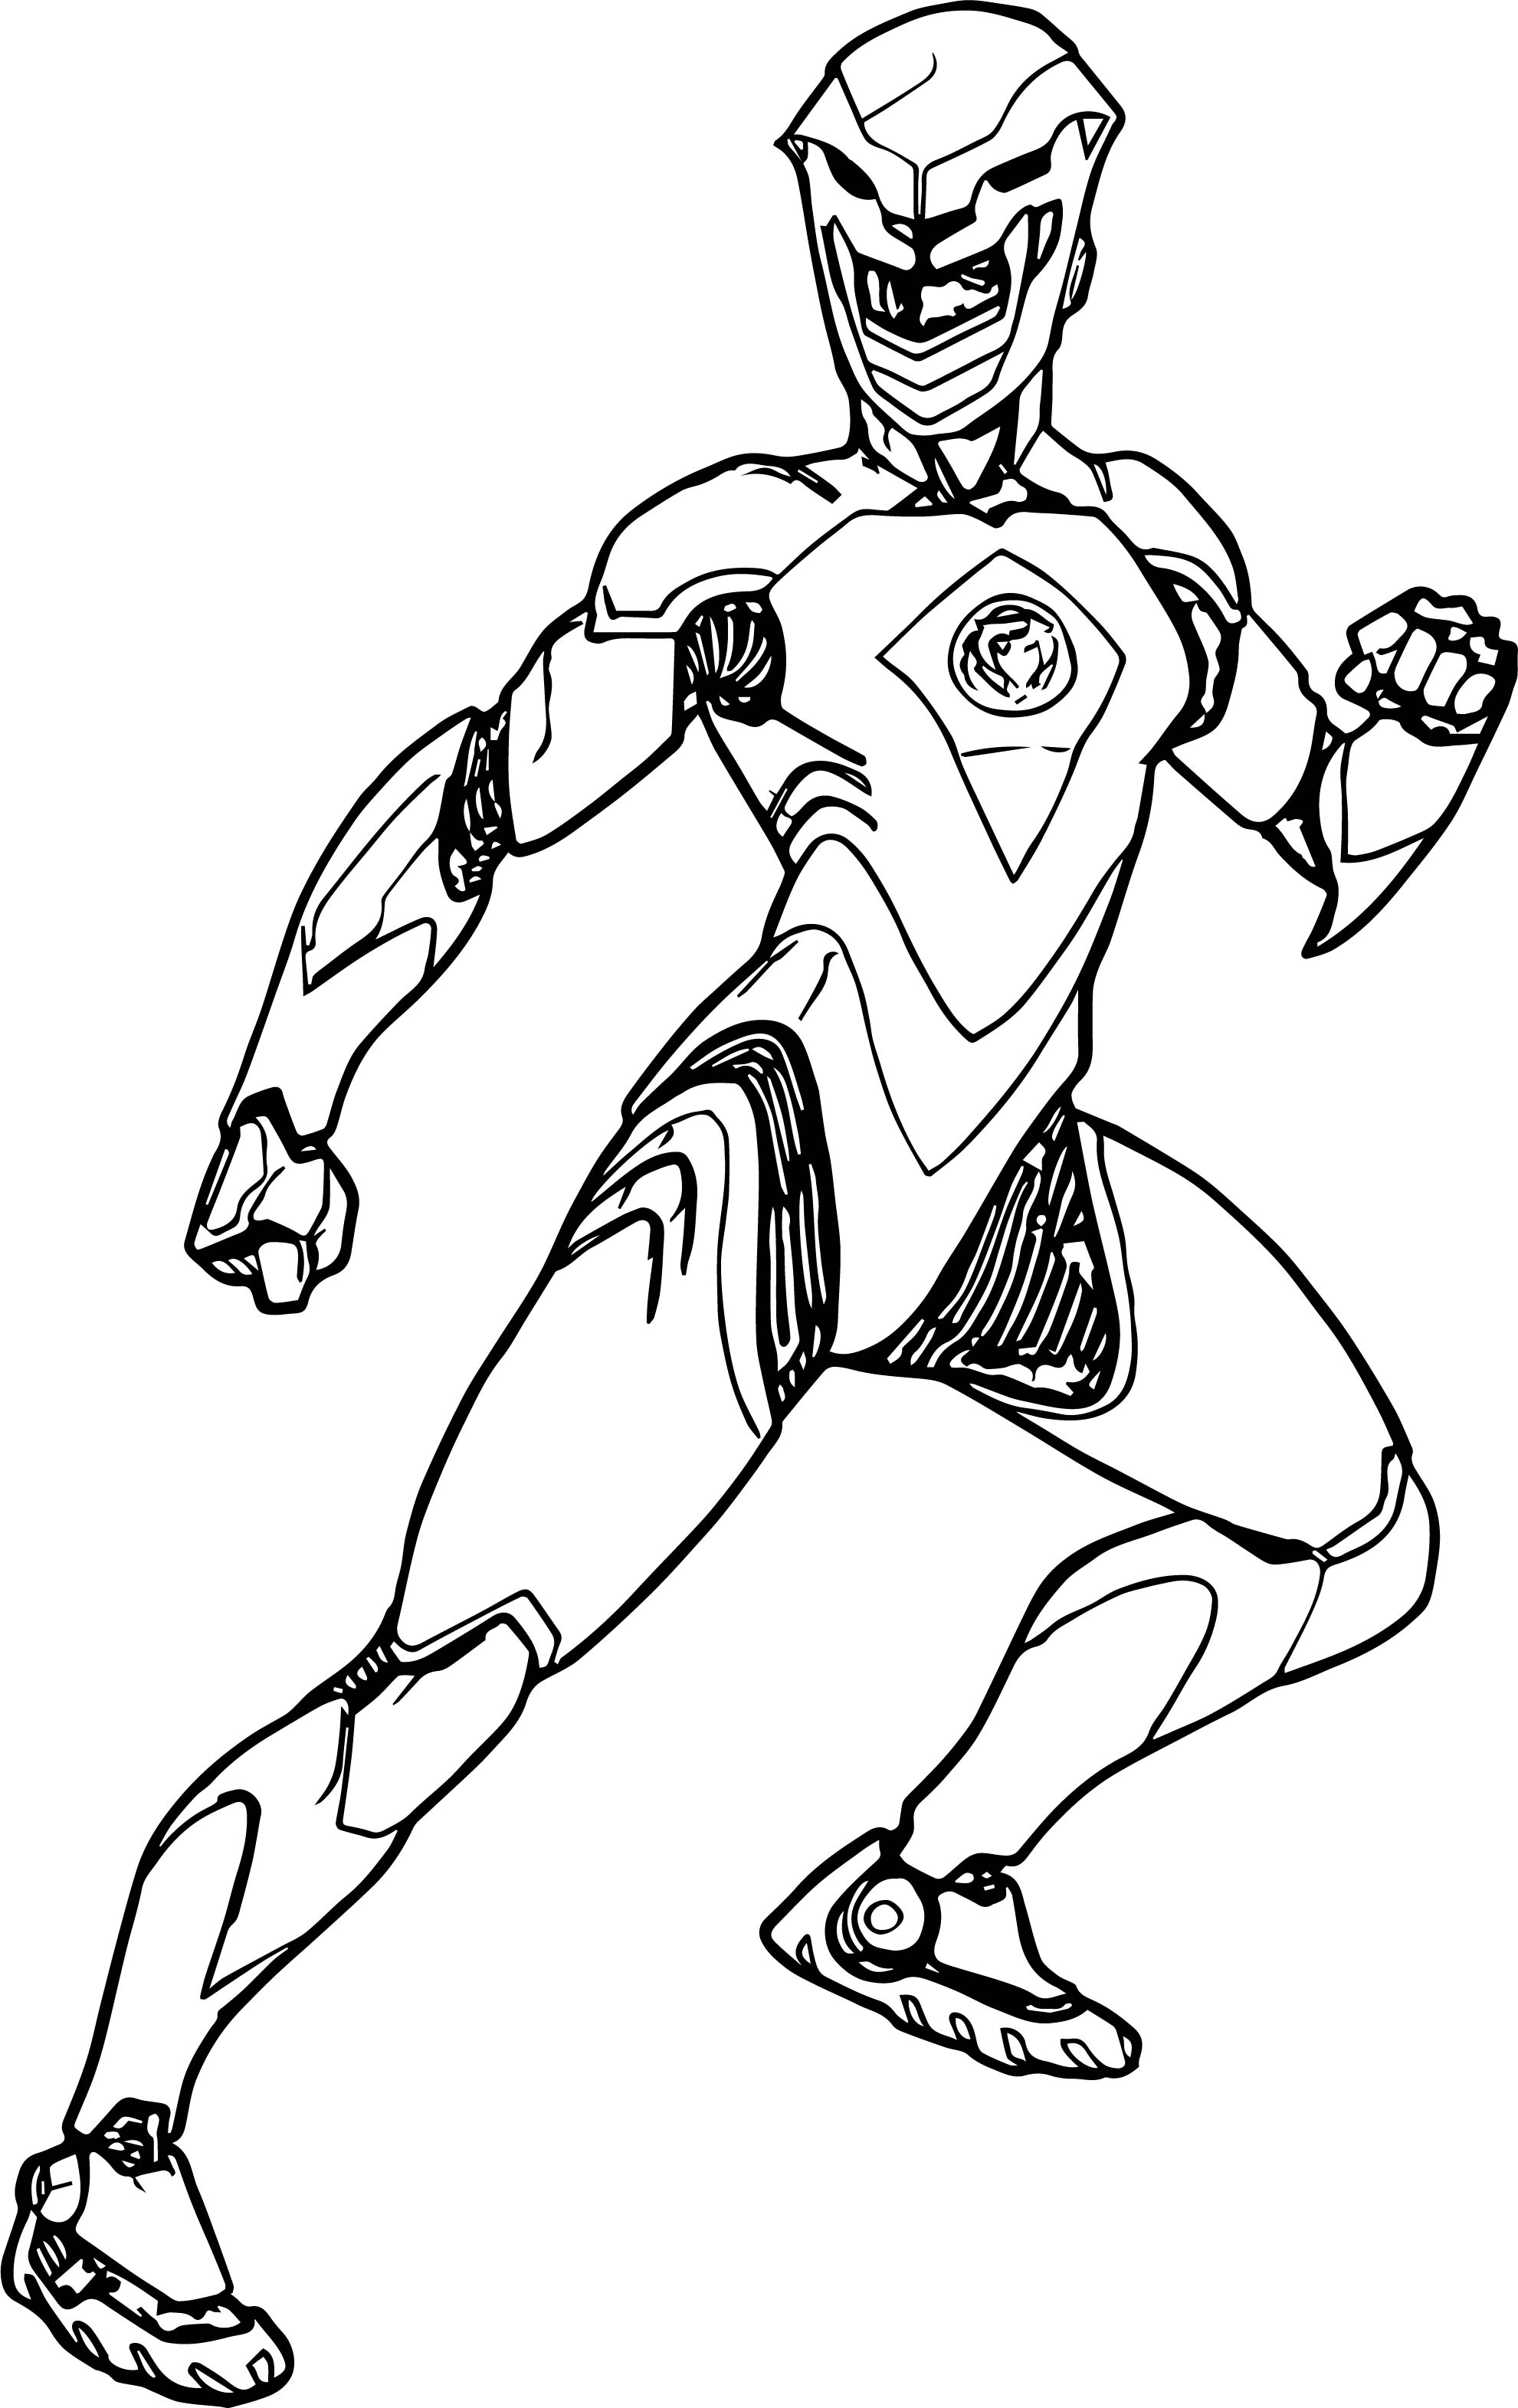 Kick Power Rangers Coloring Page